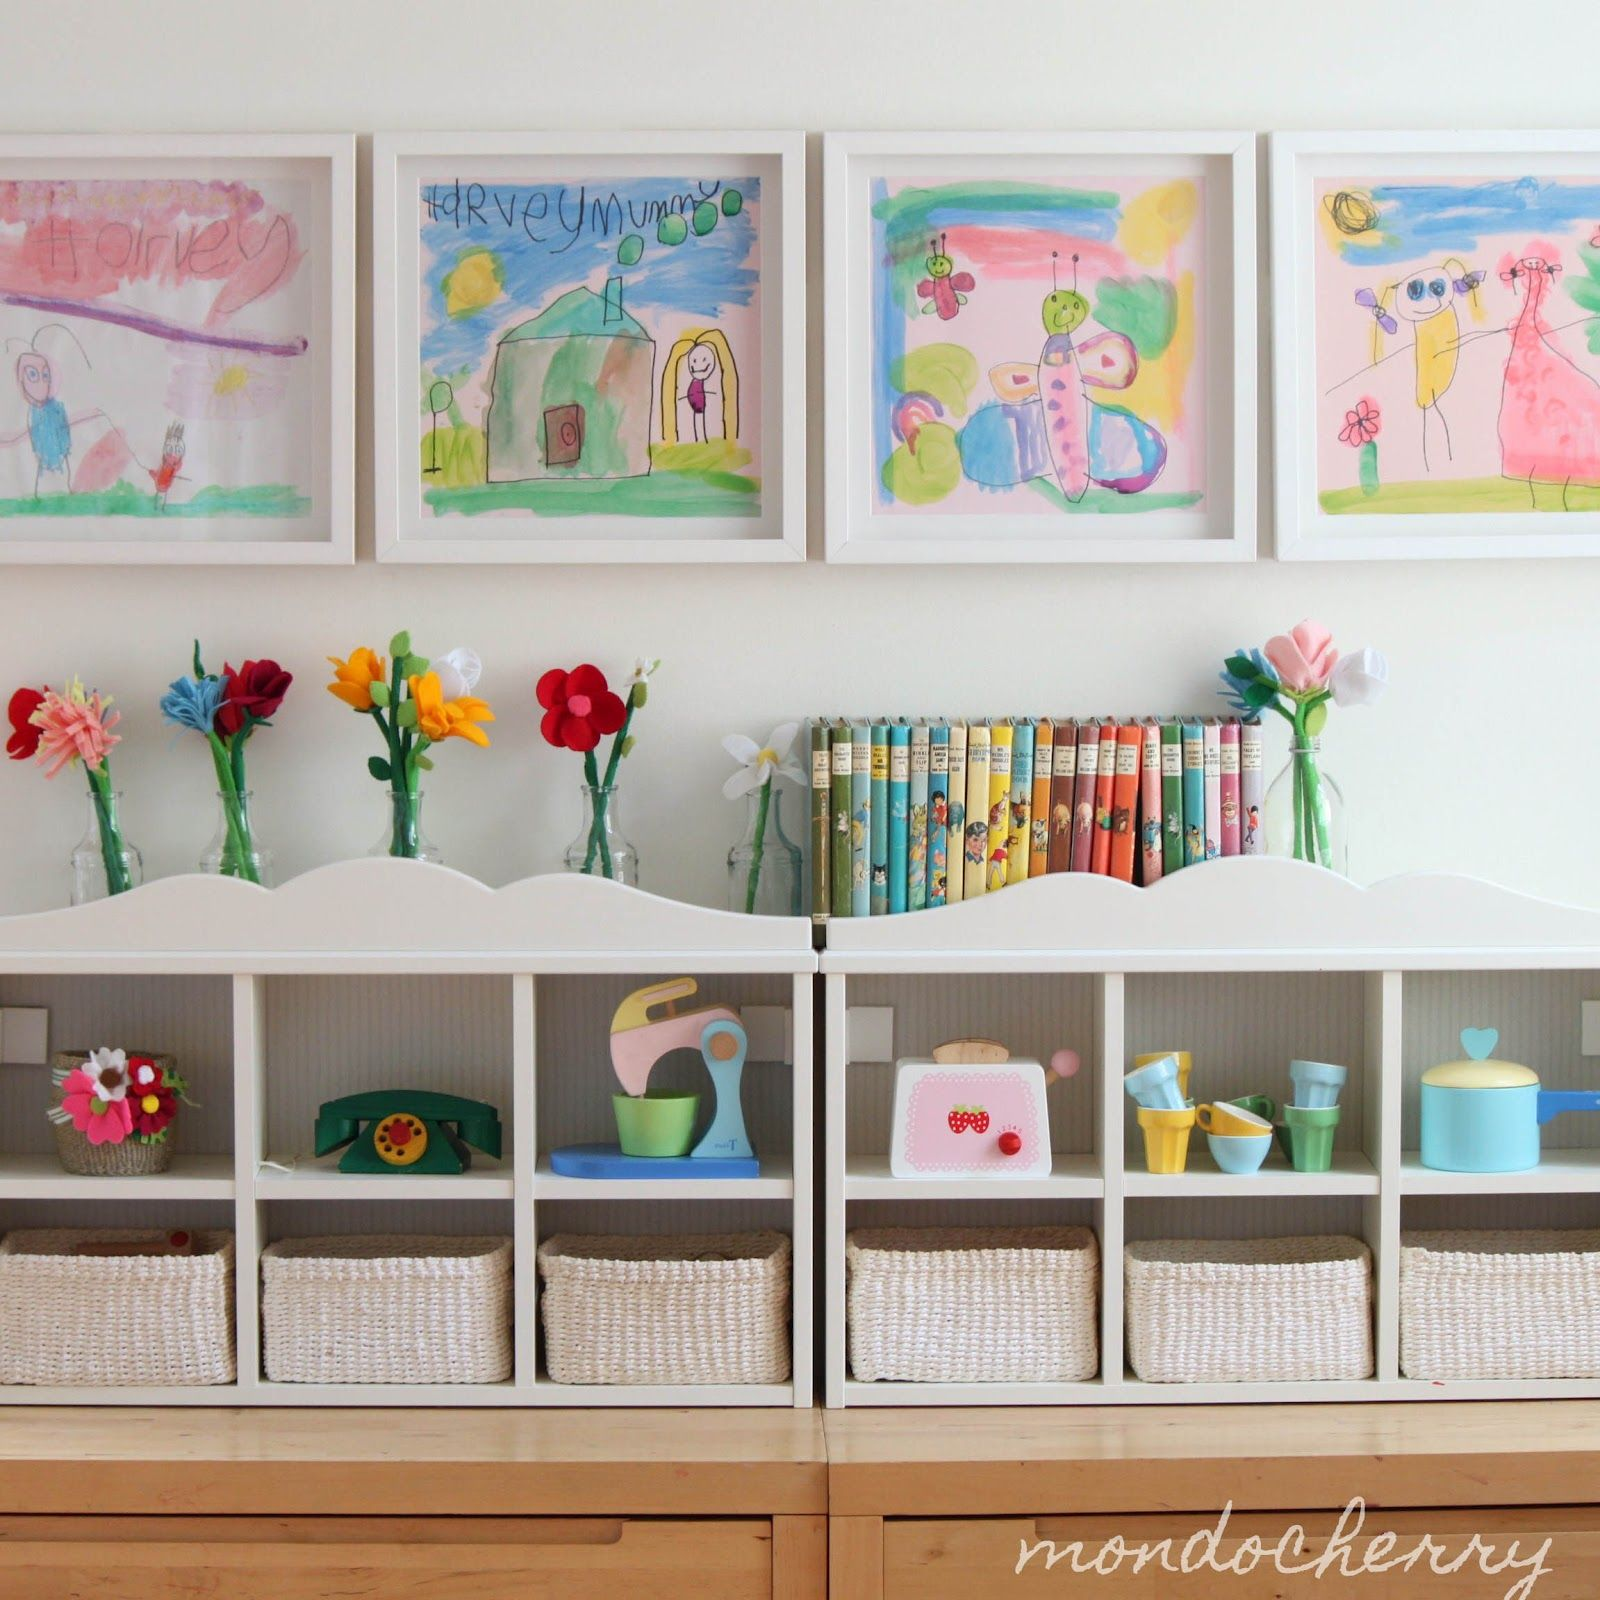 Childrens Playrooms children's art work as home décor | playrooms, storage and room